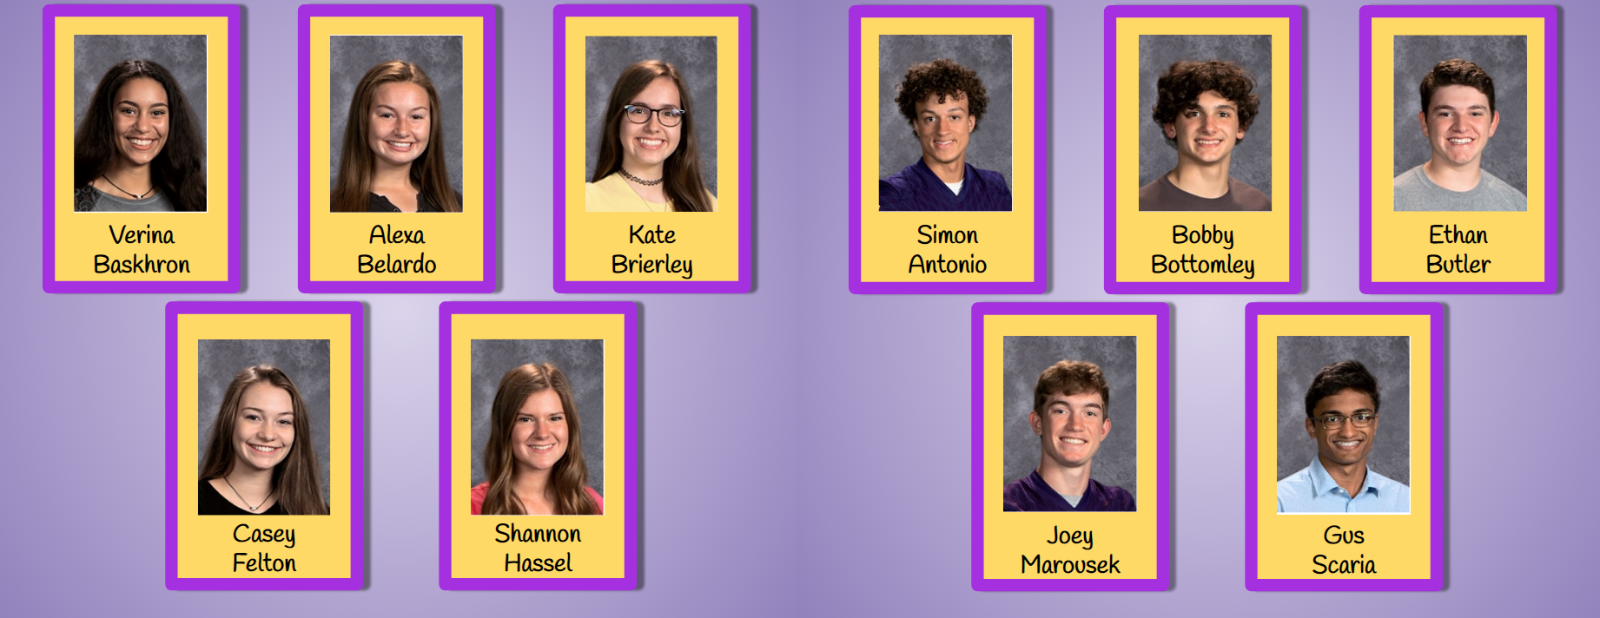 2019 North Royalton High School Homecoming Court